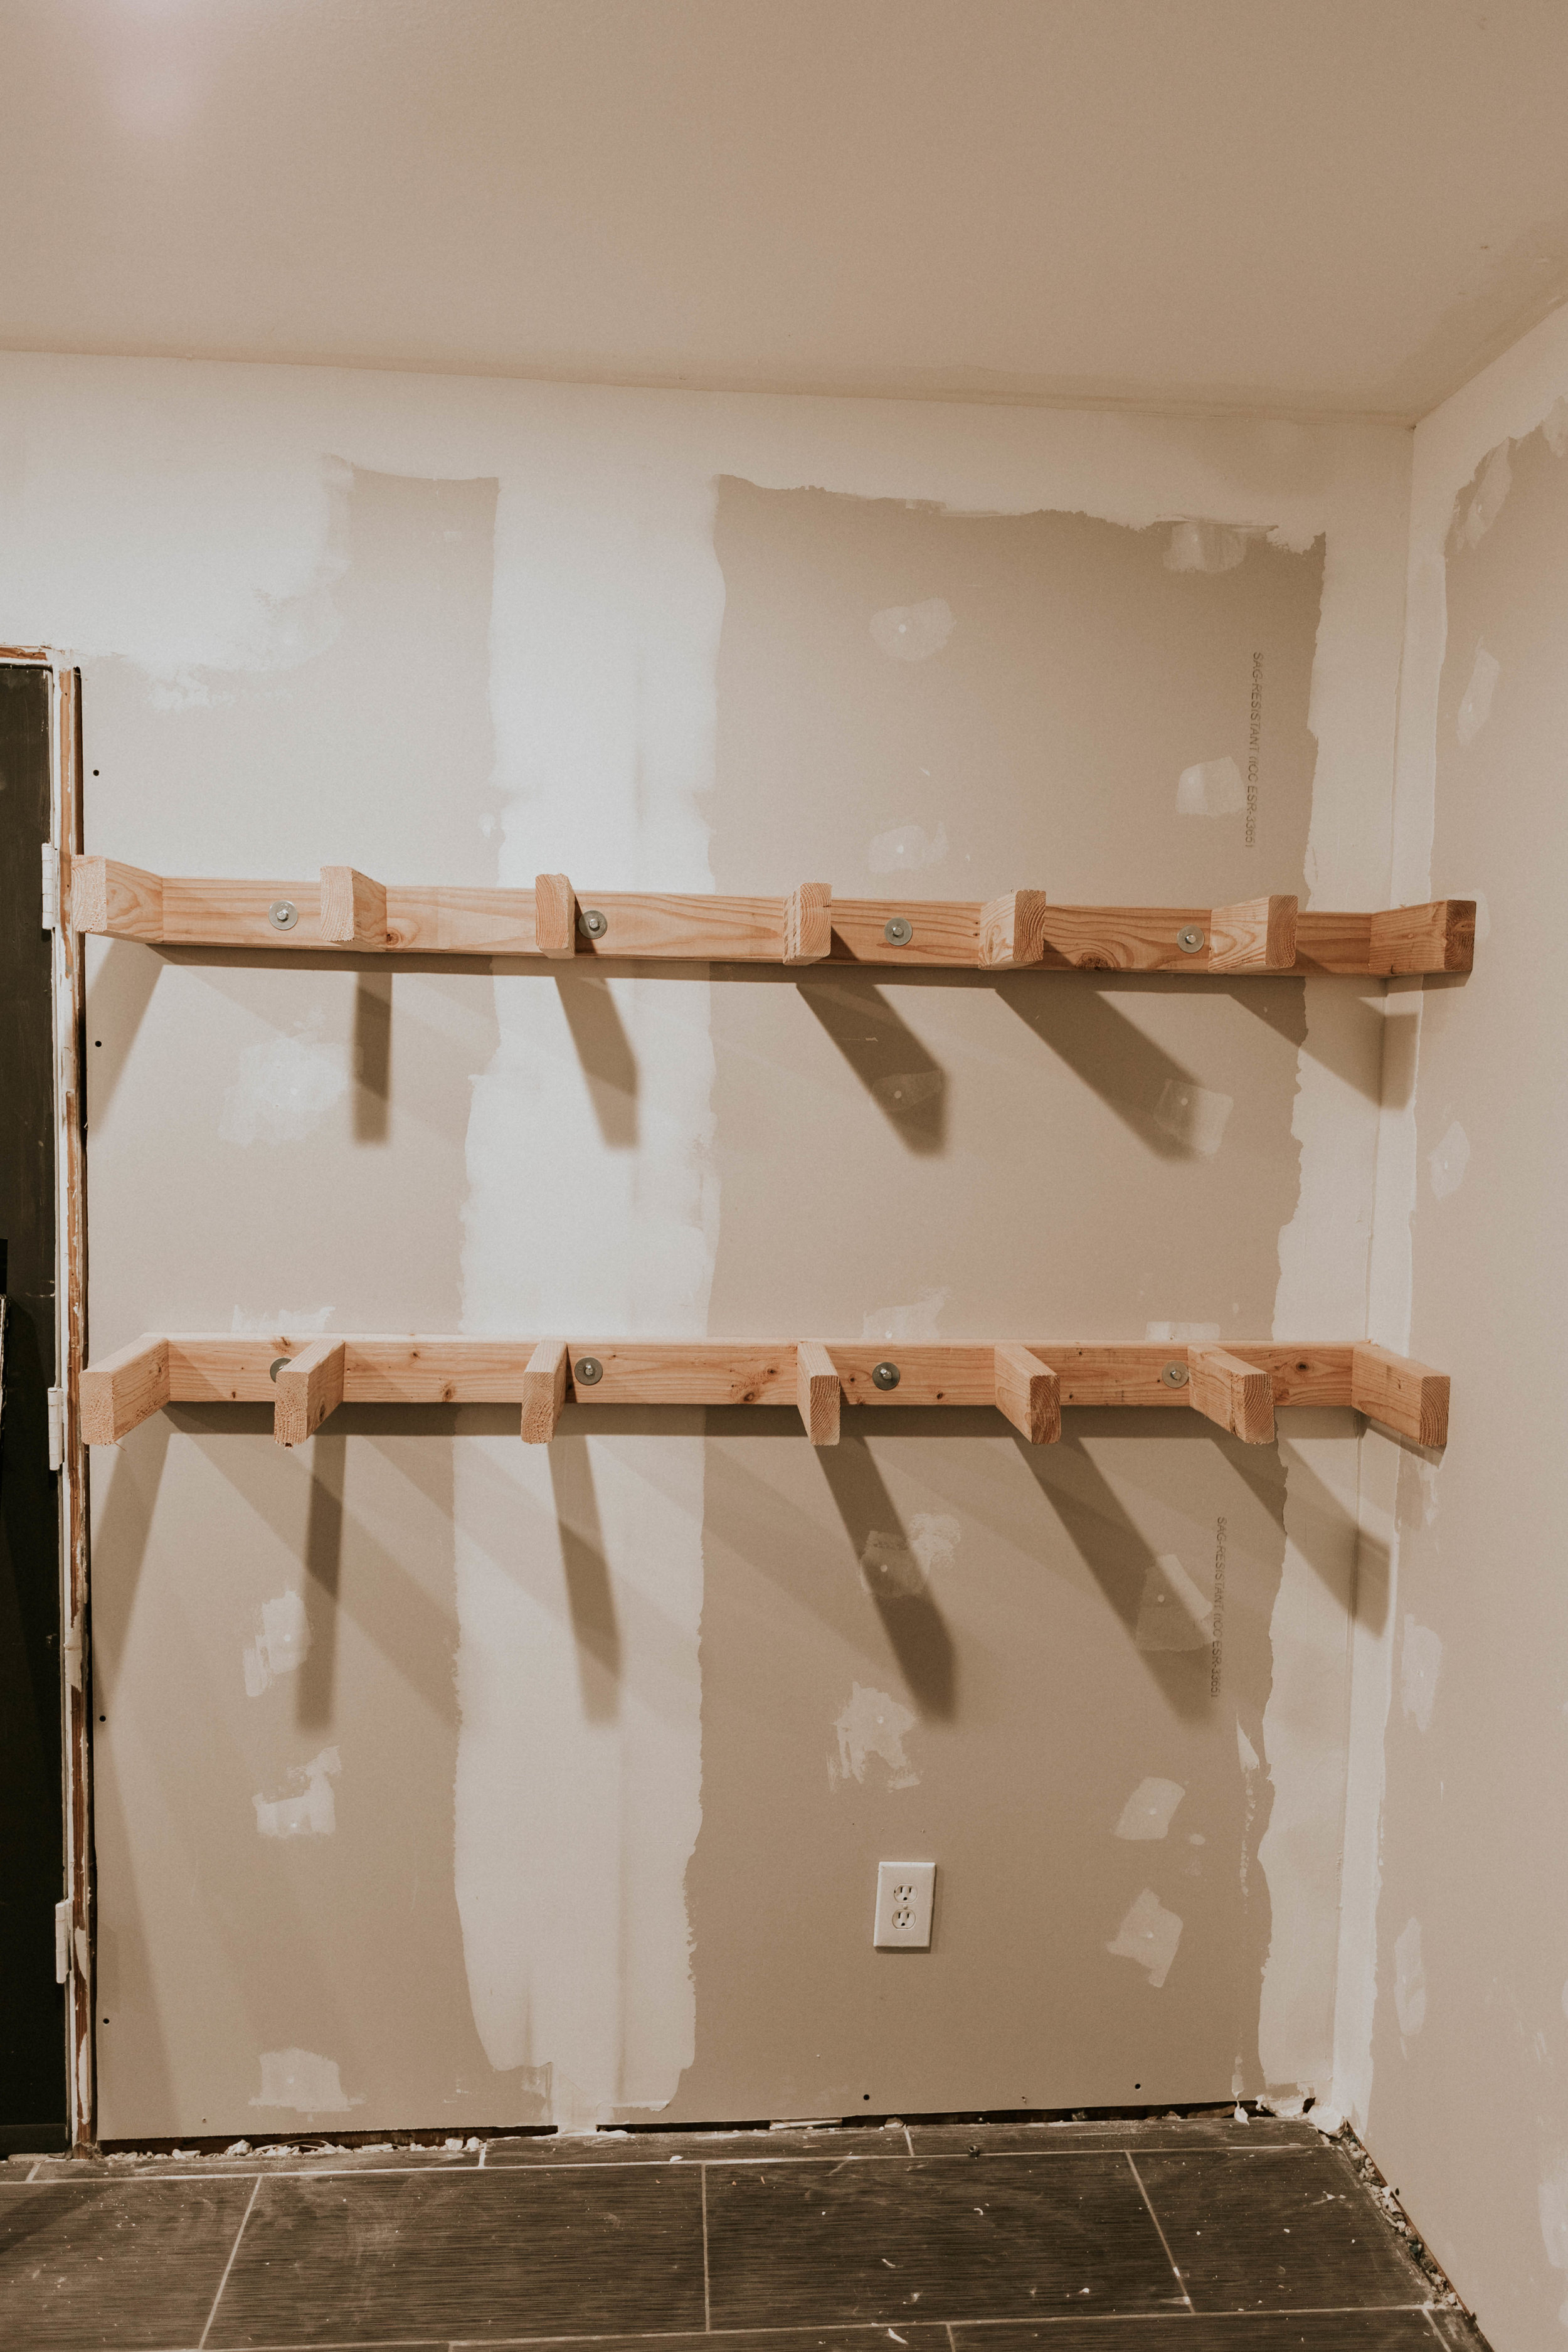 How to build open shelving for your kitchen!